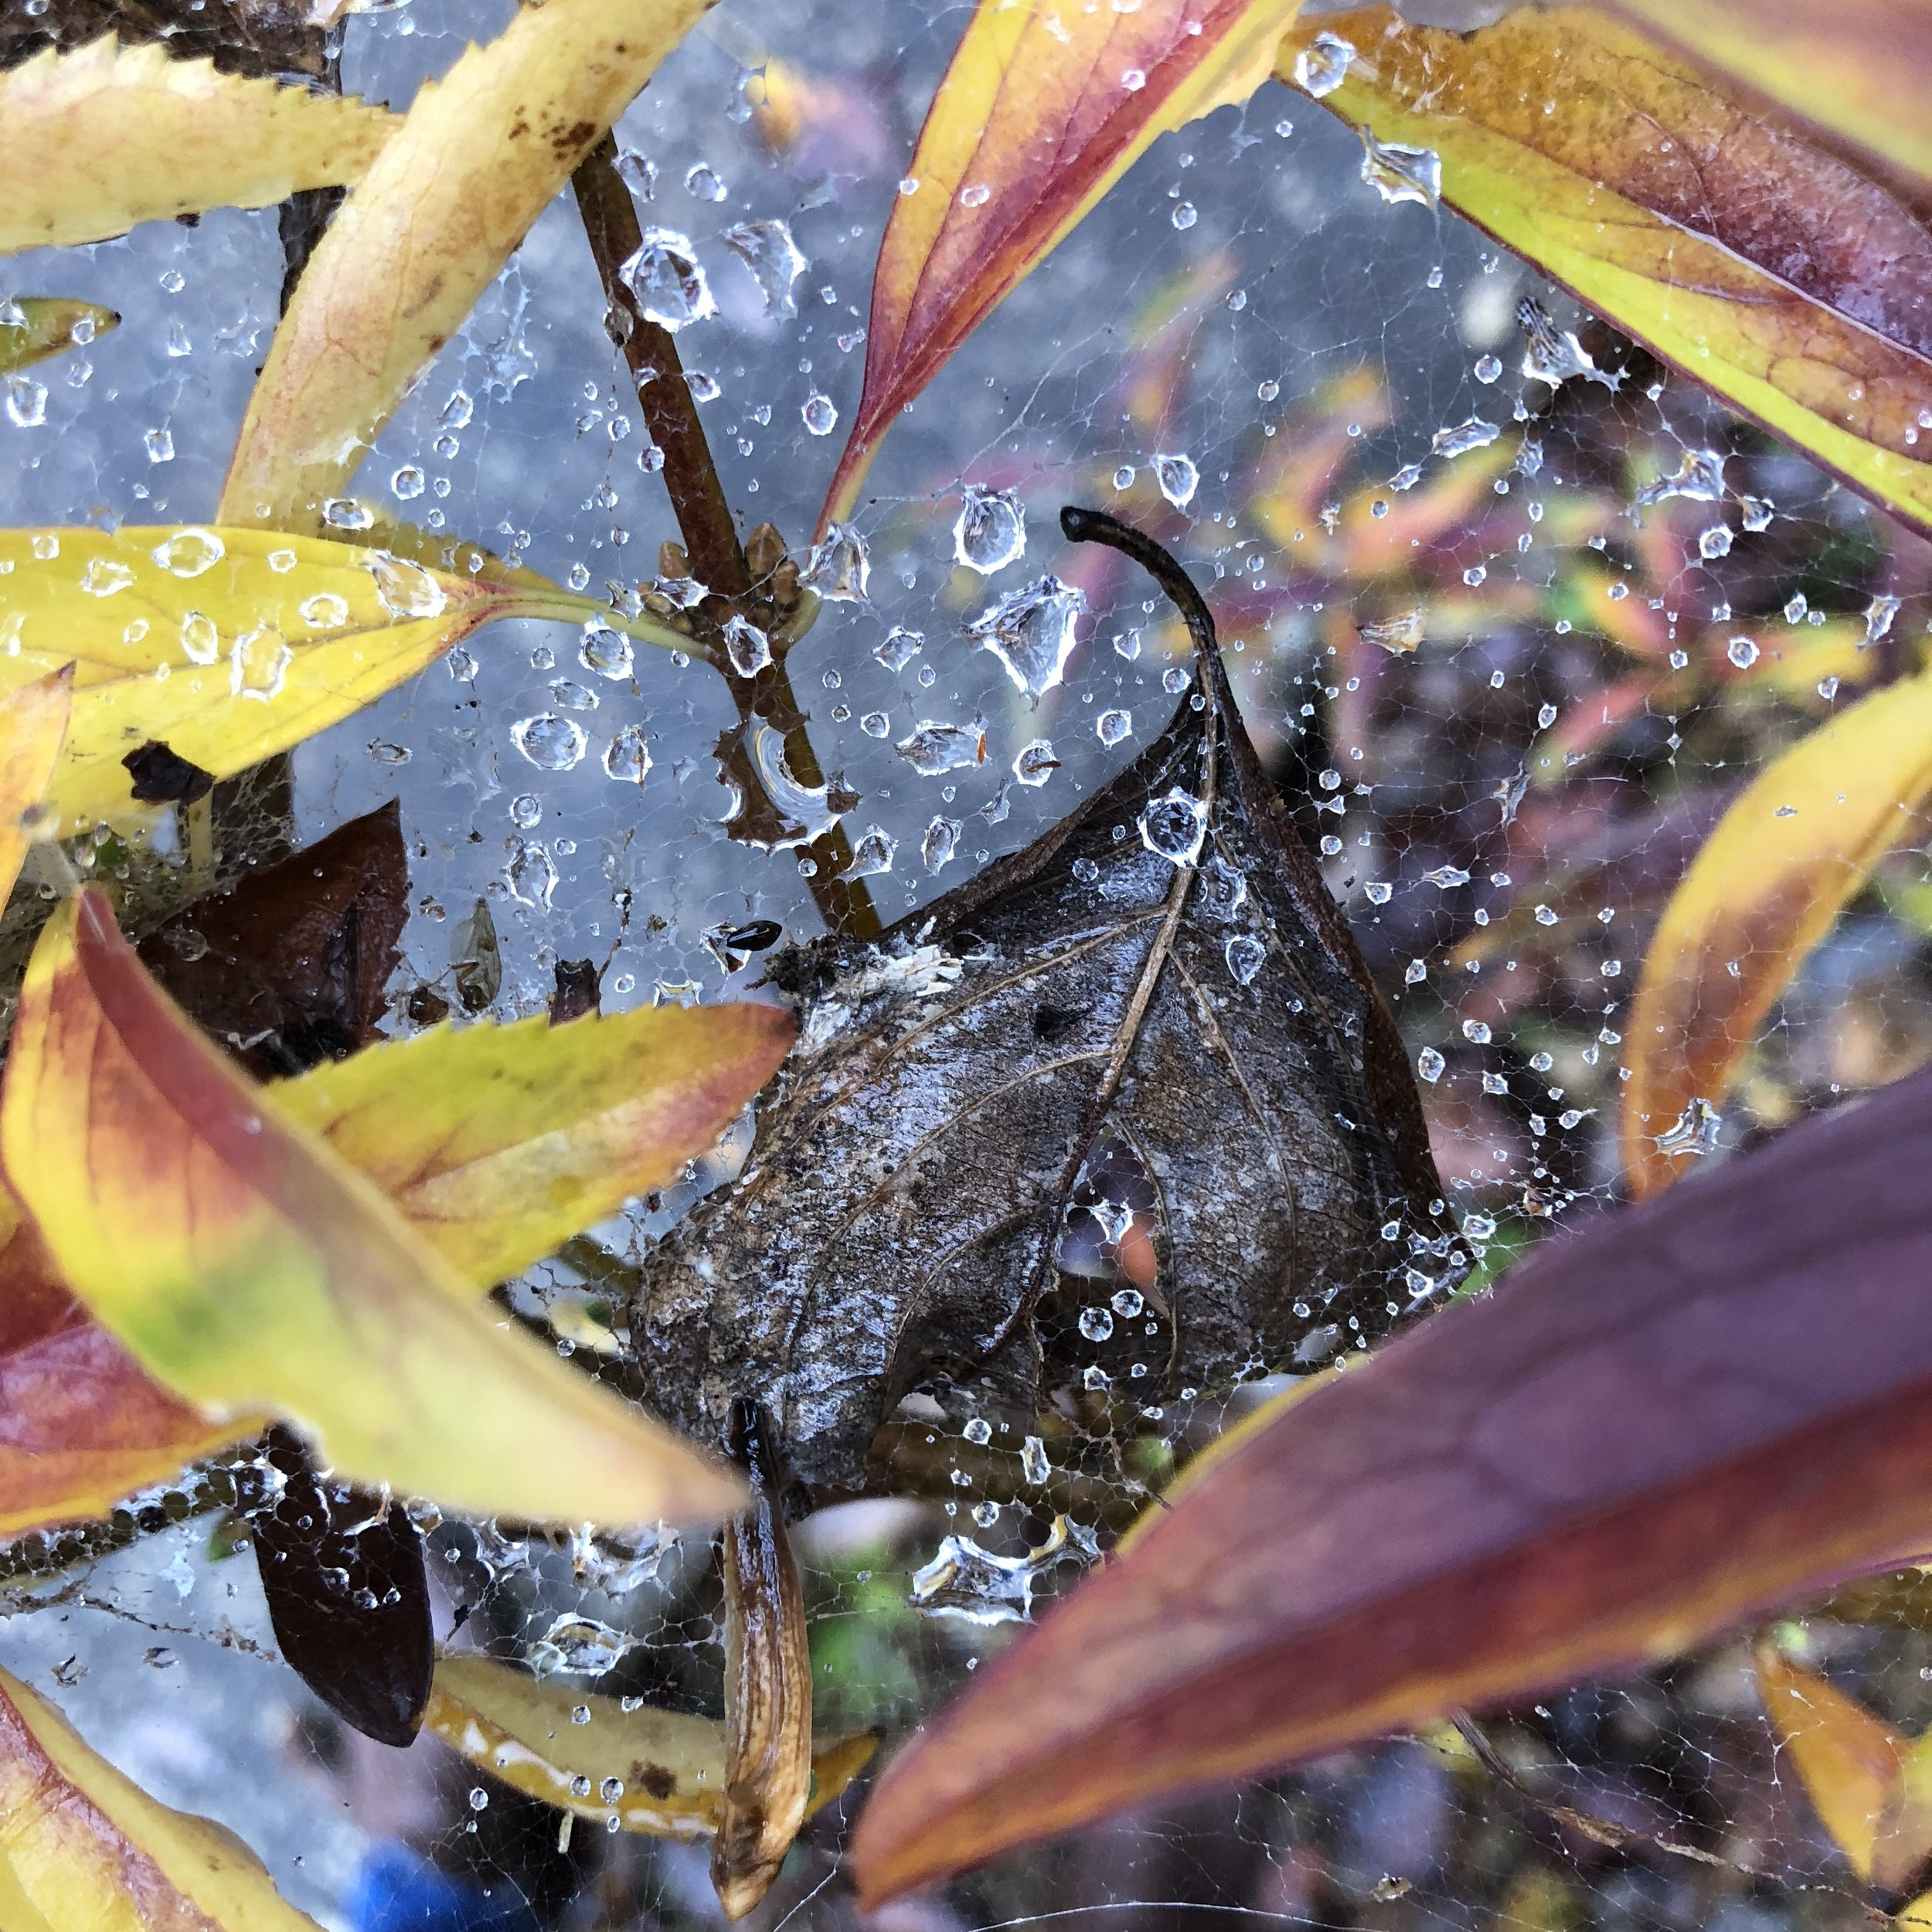 Glimsen-wet-web-leaves.JPG